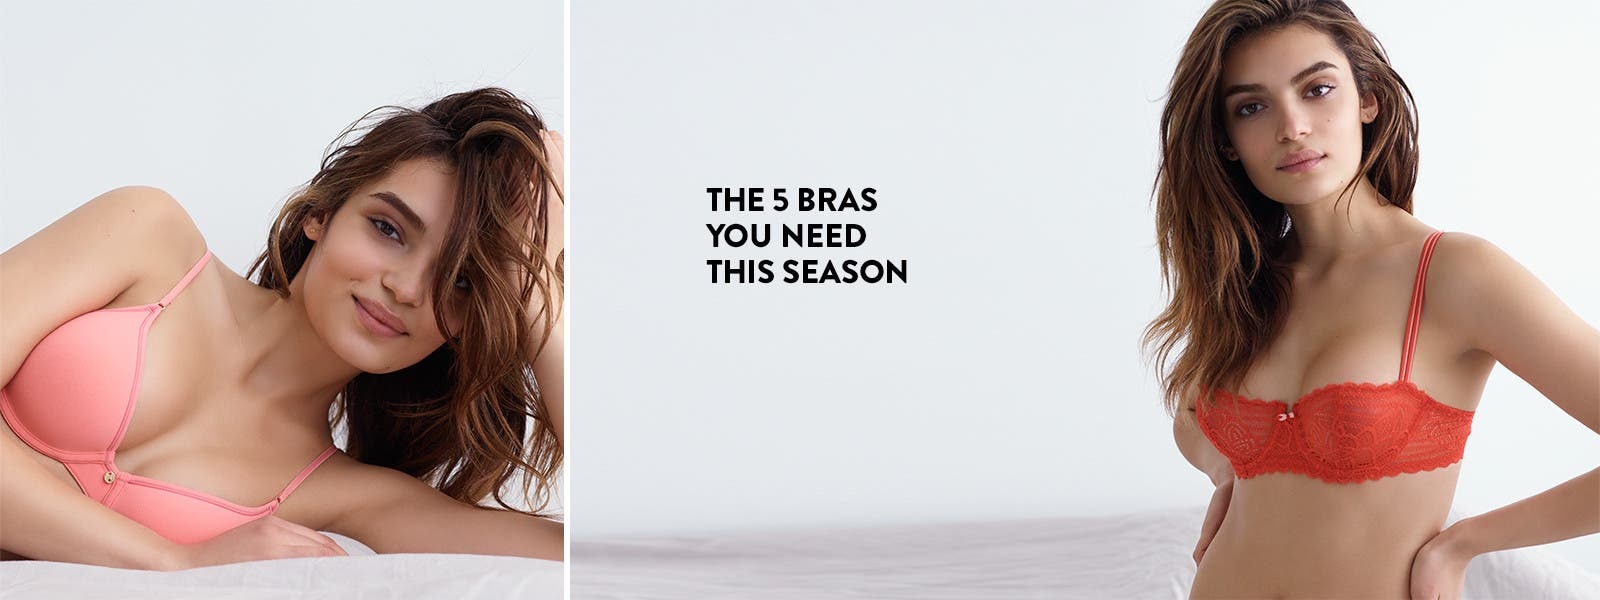 The 5 bras you need this season.